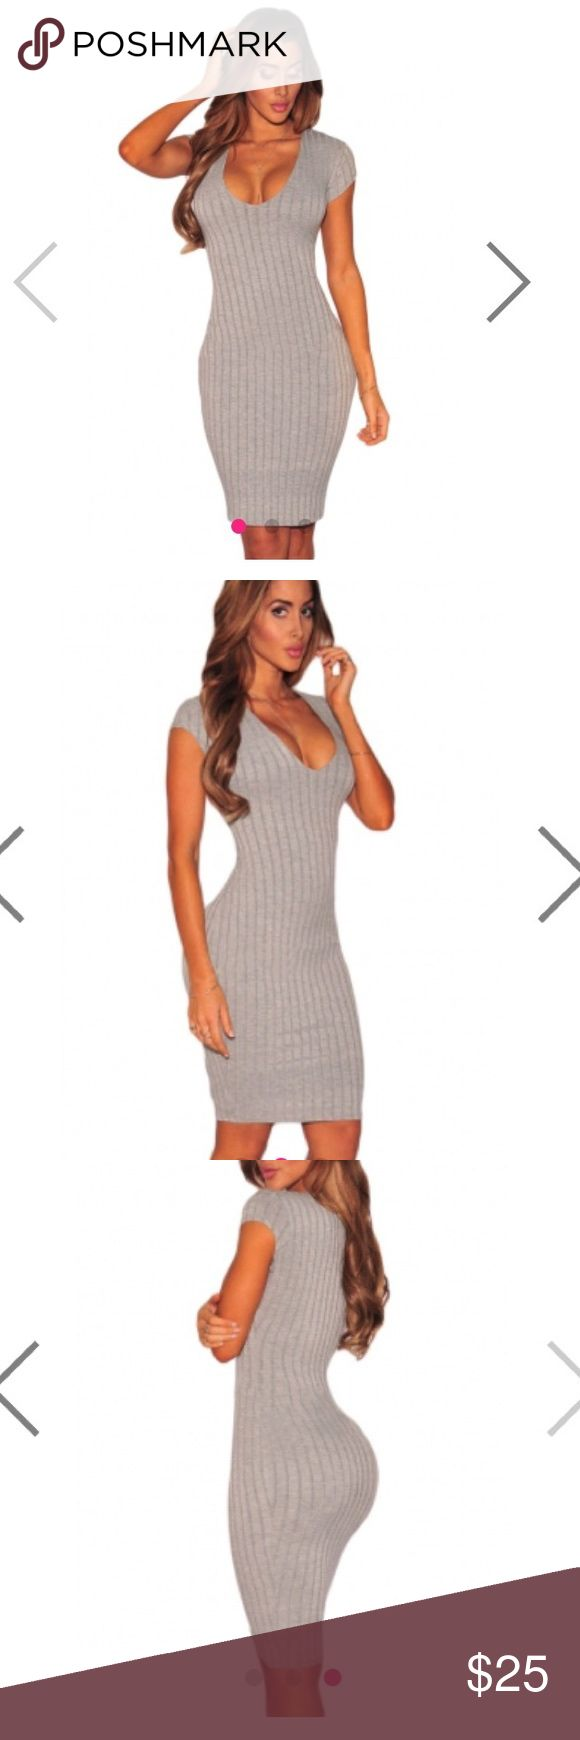 Grey ribbed midi bodycon dress hot Miami styles s This dress is perfect for any occasion. Bodycon style hugs your curves gives an hourglass illusion. Deep plunging neckline. Ribbed material. Item is unbranded, only listed as hot Miami styles for views. Brand new in packaging. Size small hot miami styles  Dresses Midi